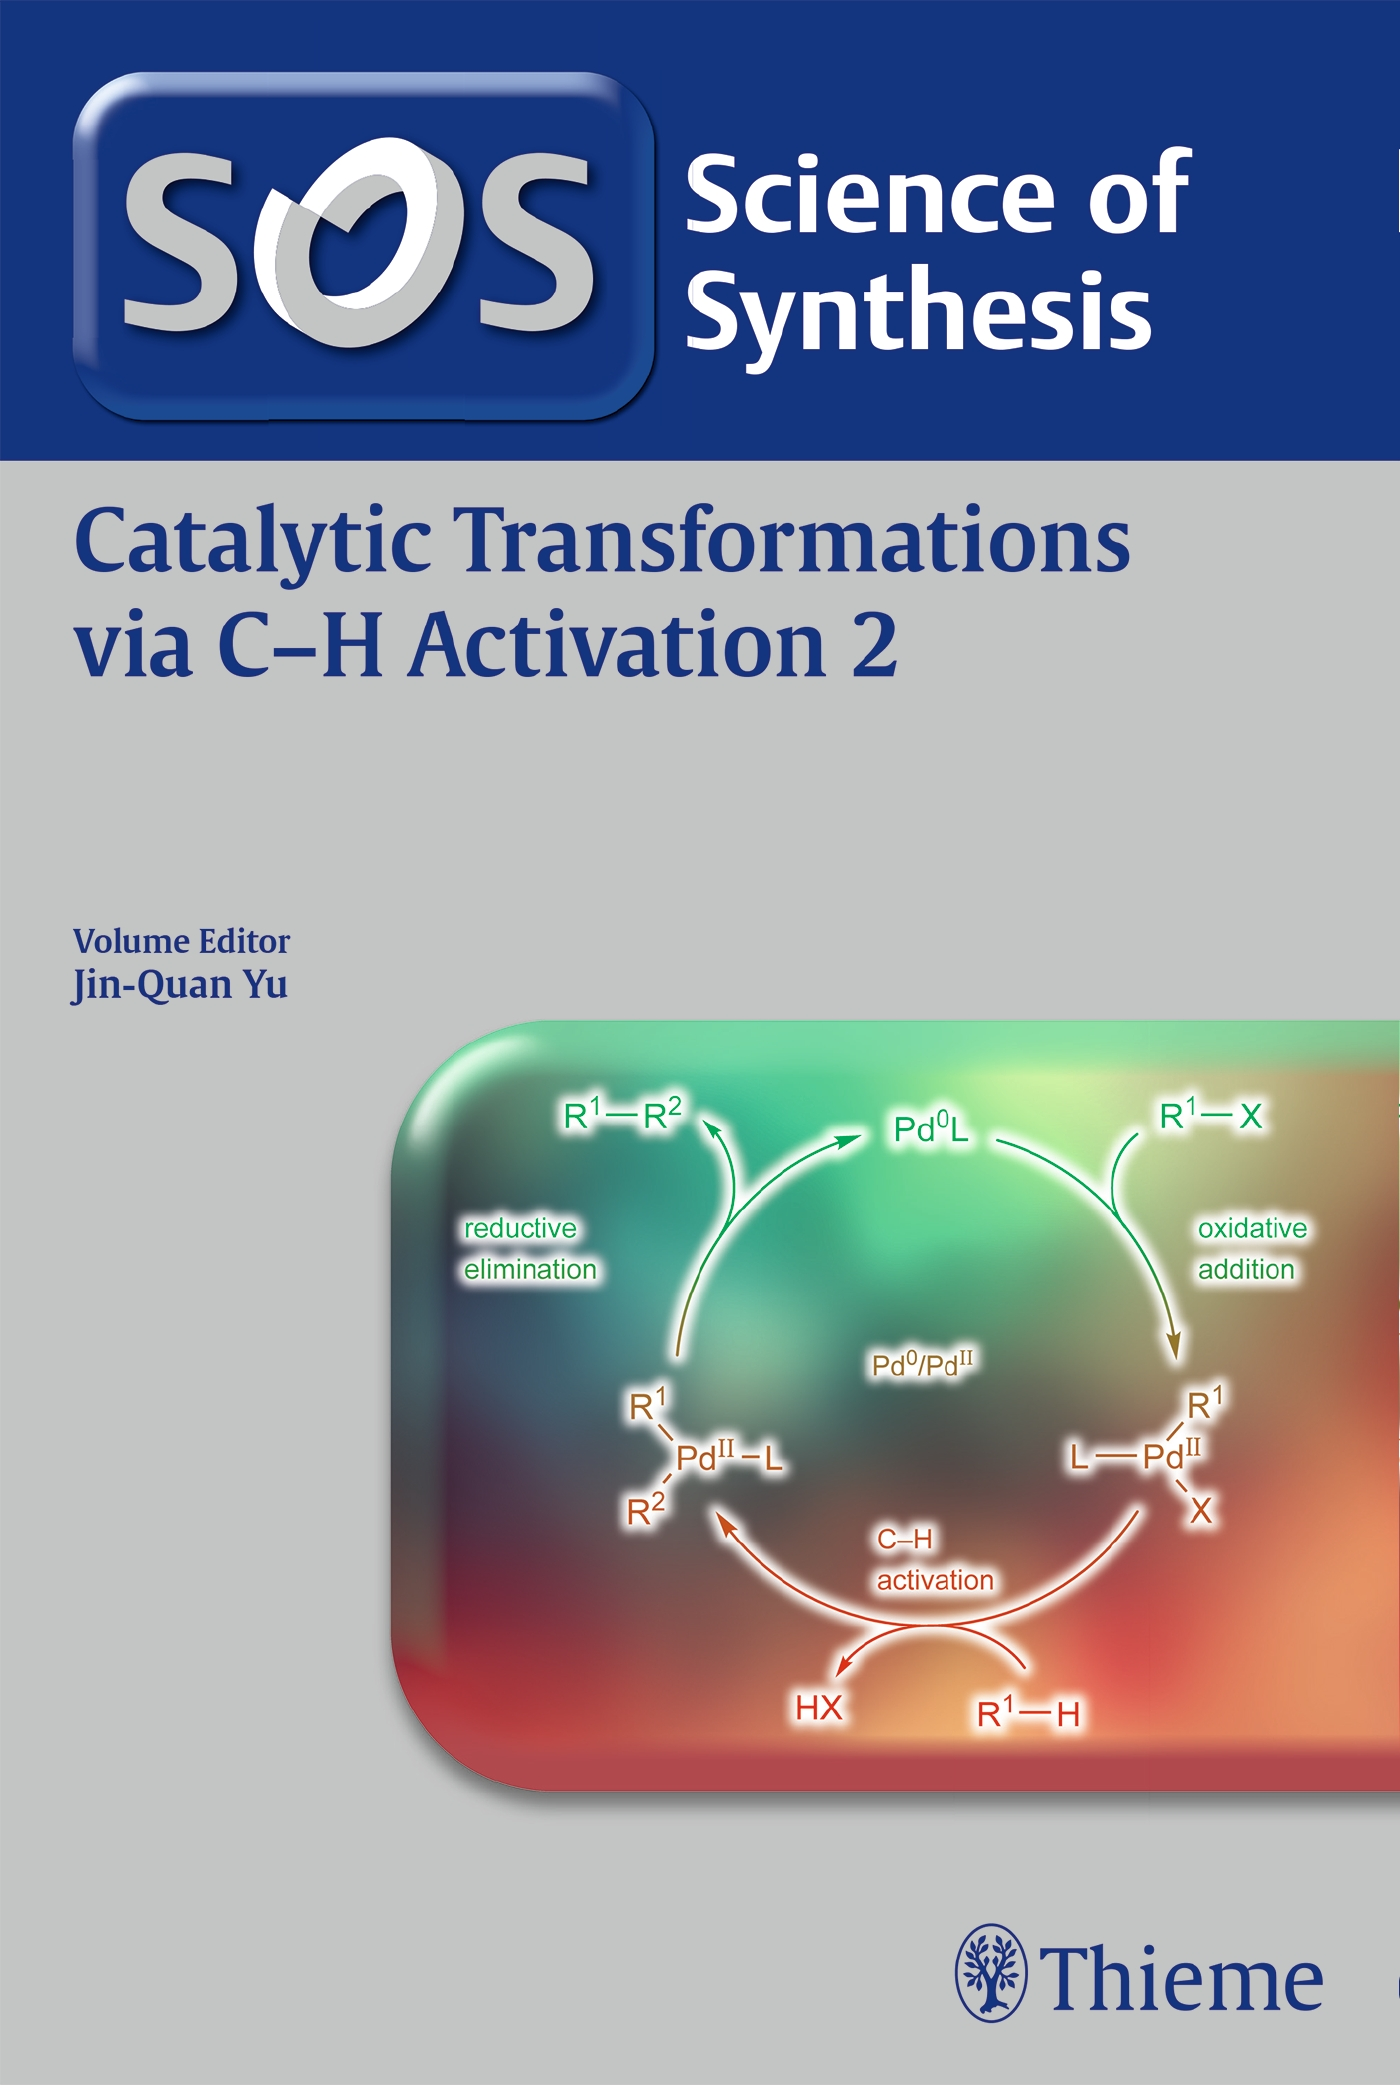 Catalytic Transformations via C-H Activation. Vol.2 Wai-Wing Chan